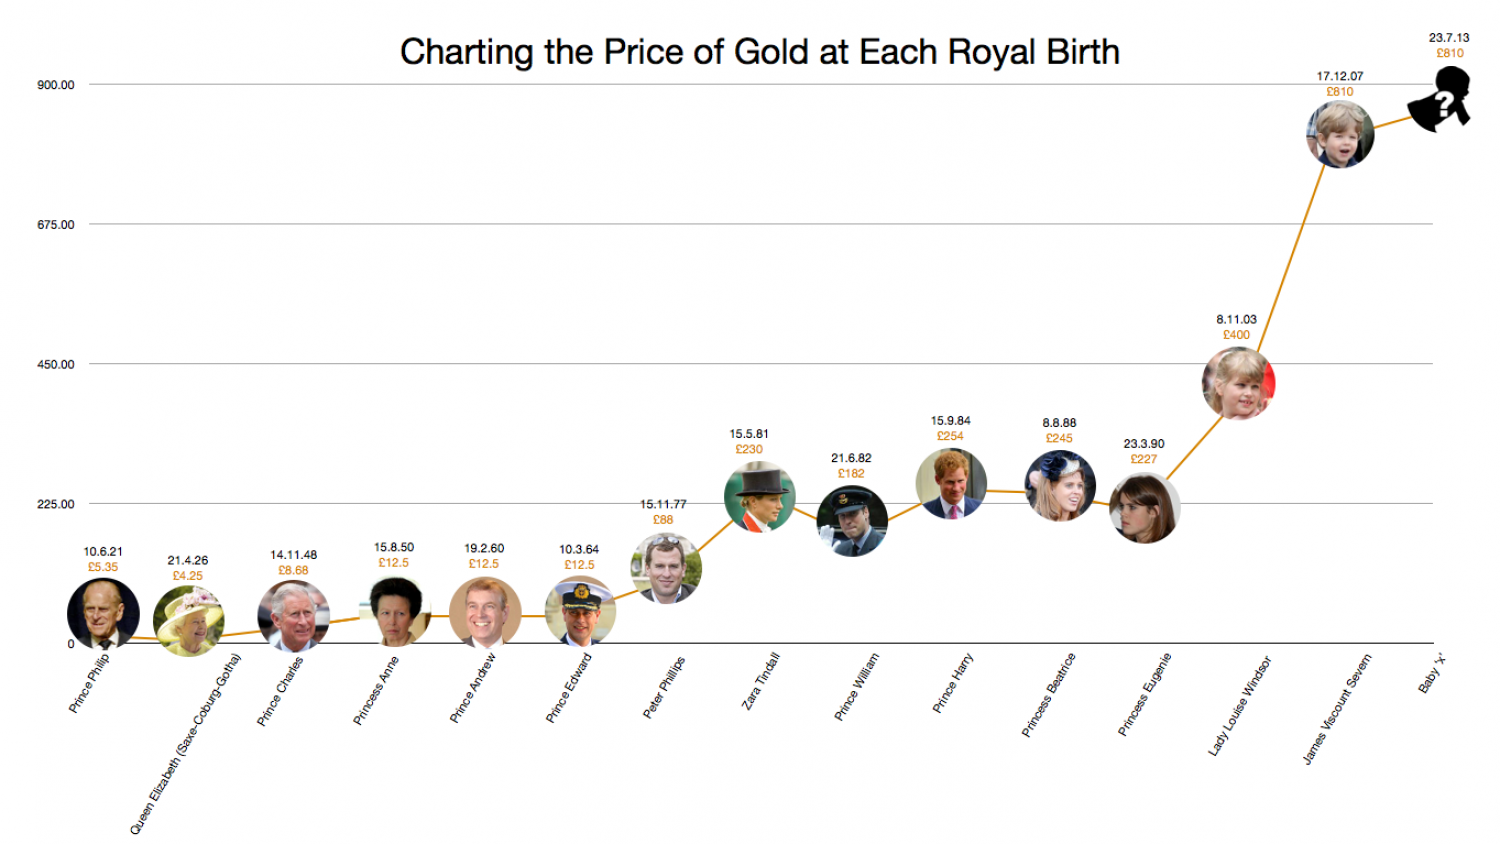 The Price of Gold at Each Royal Birth Infographic